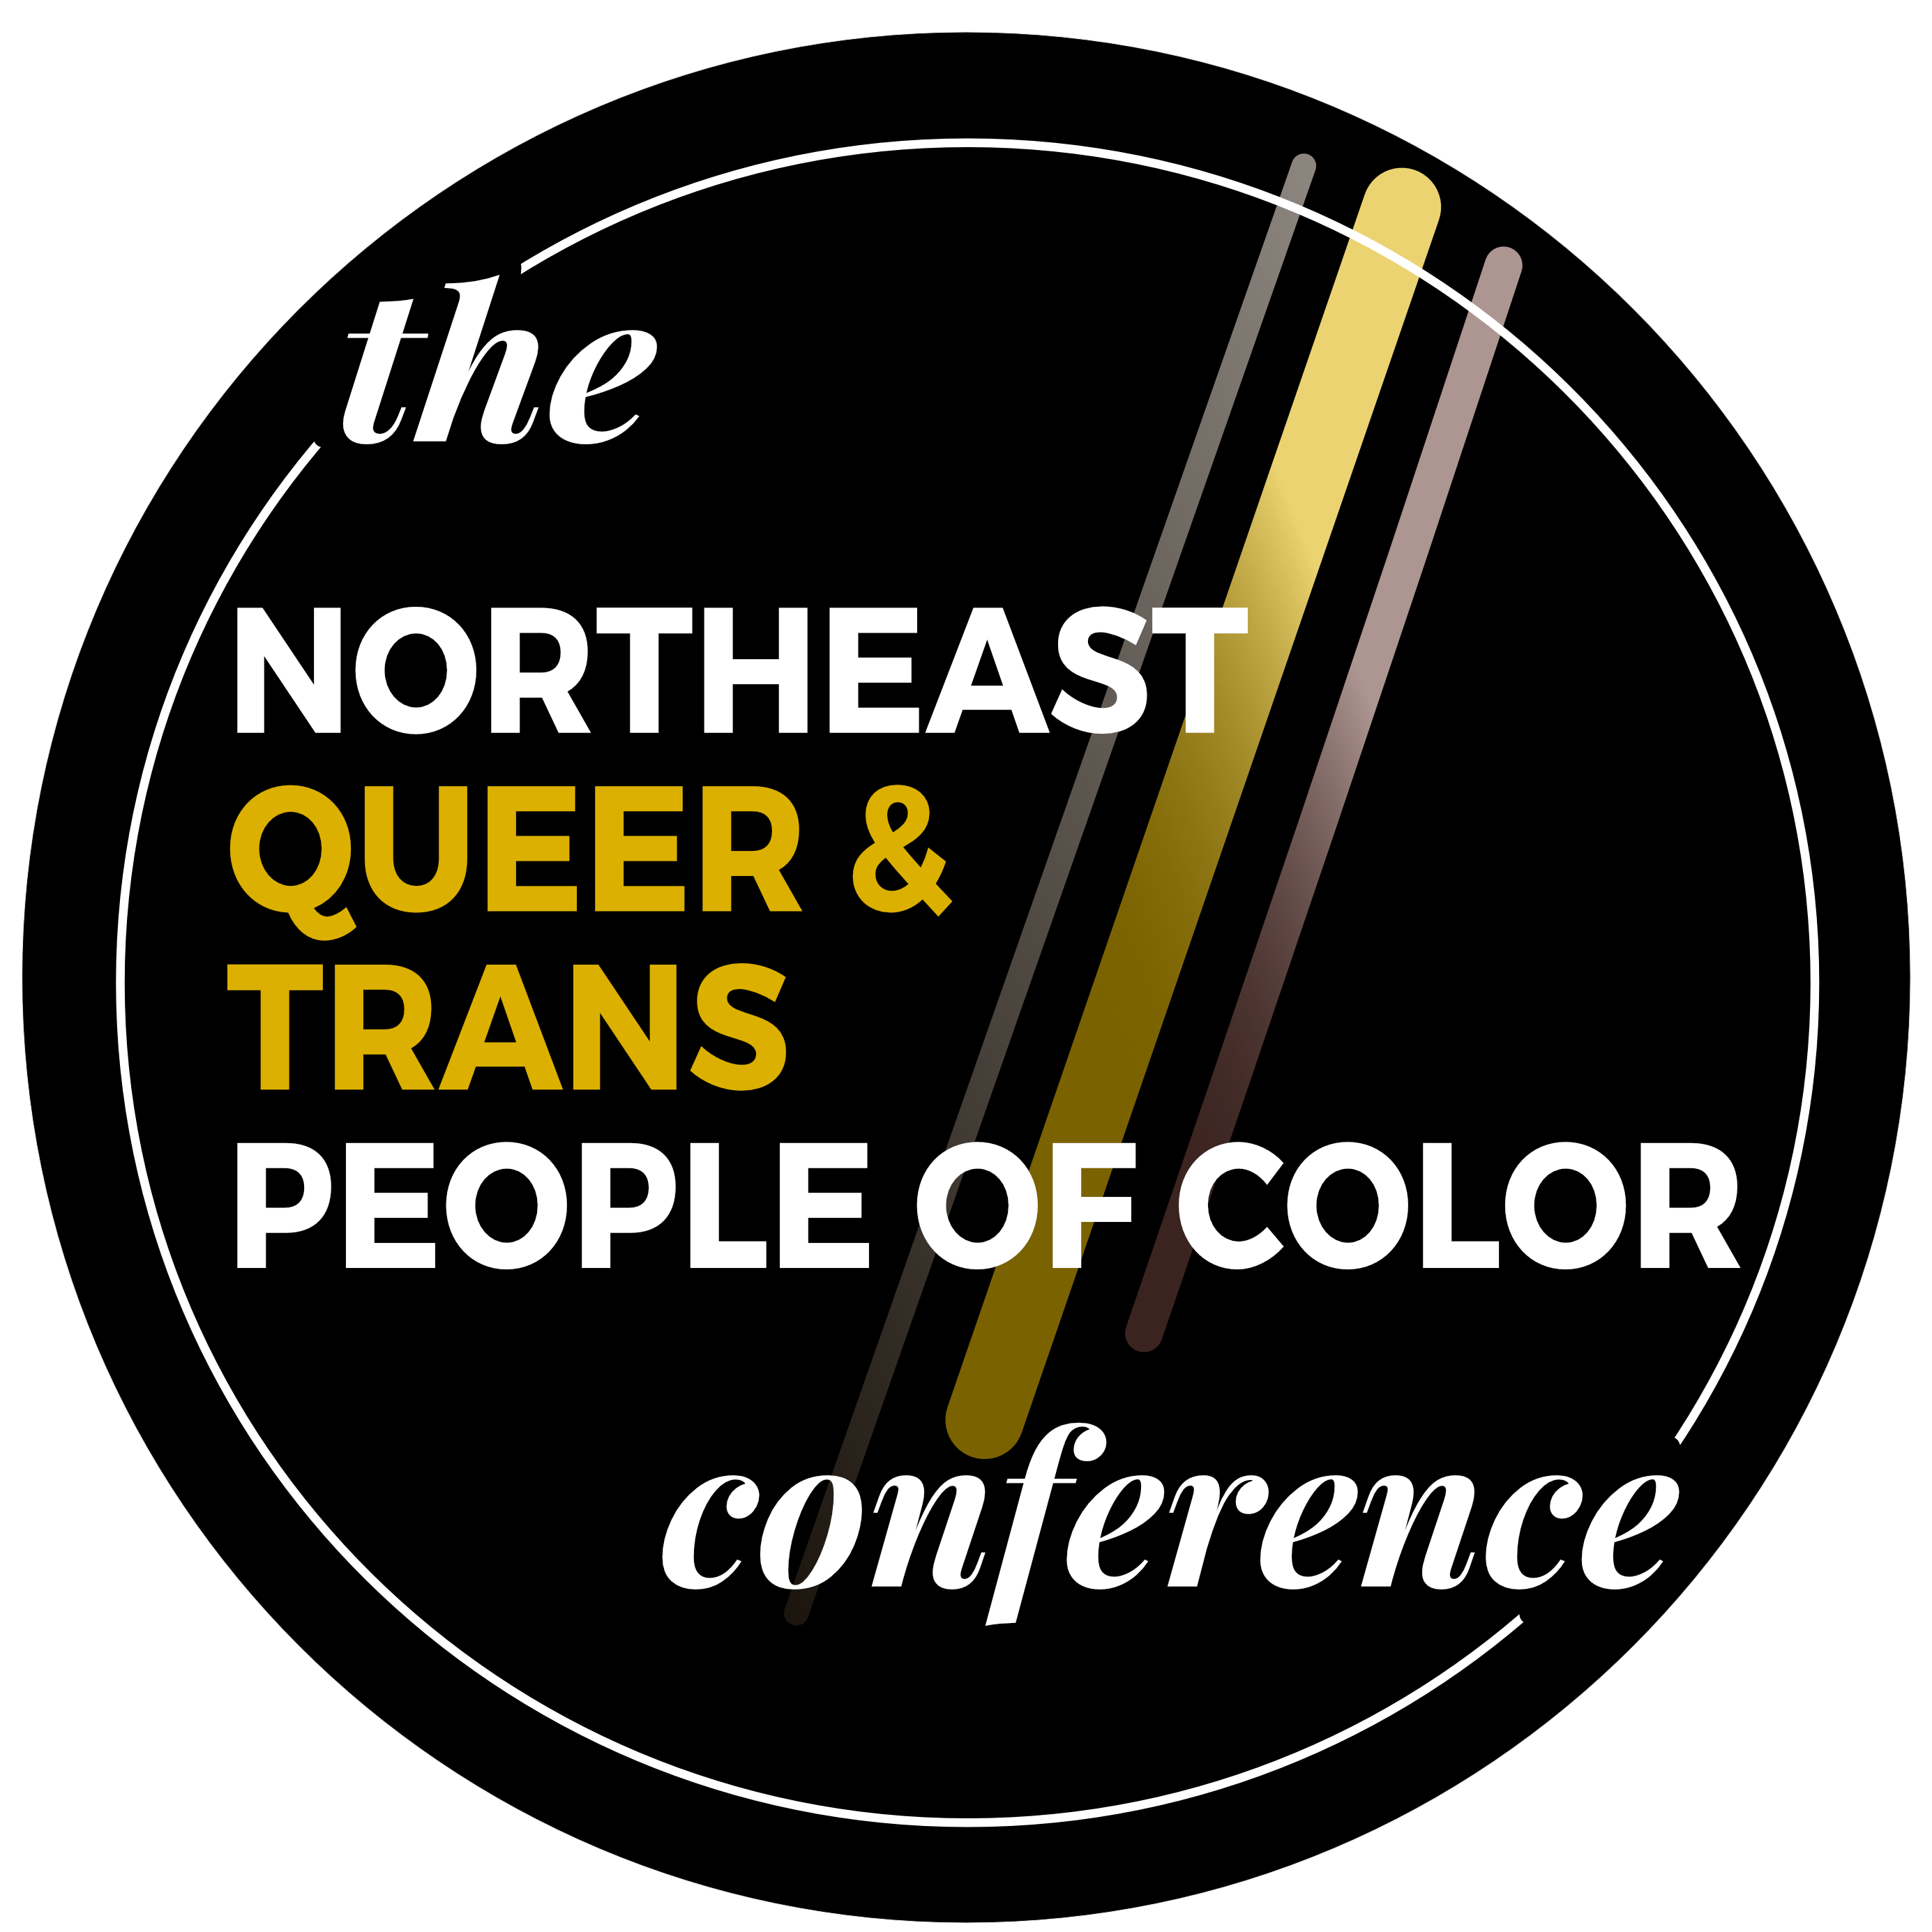 Northeast Queer & Trans People Of Color Conference